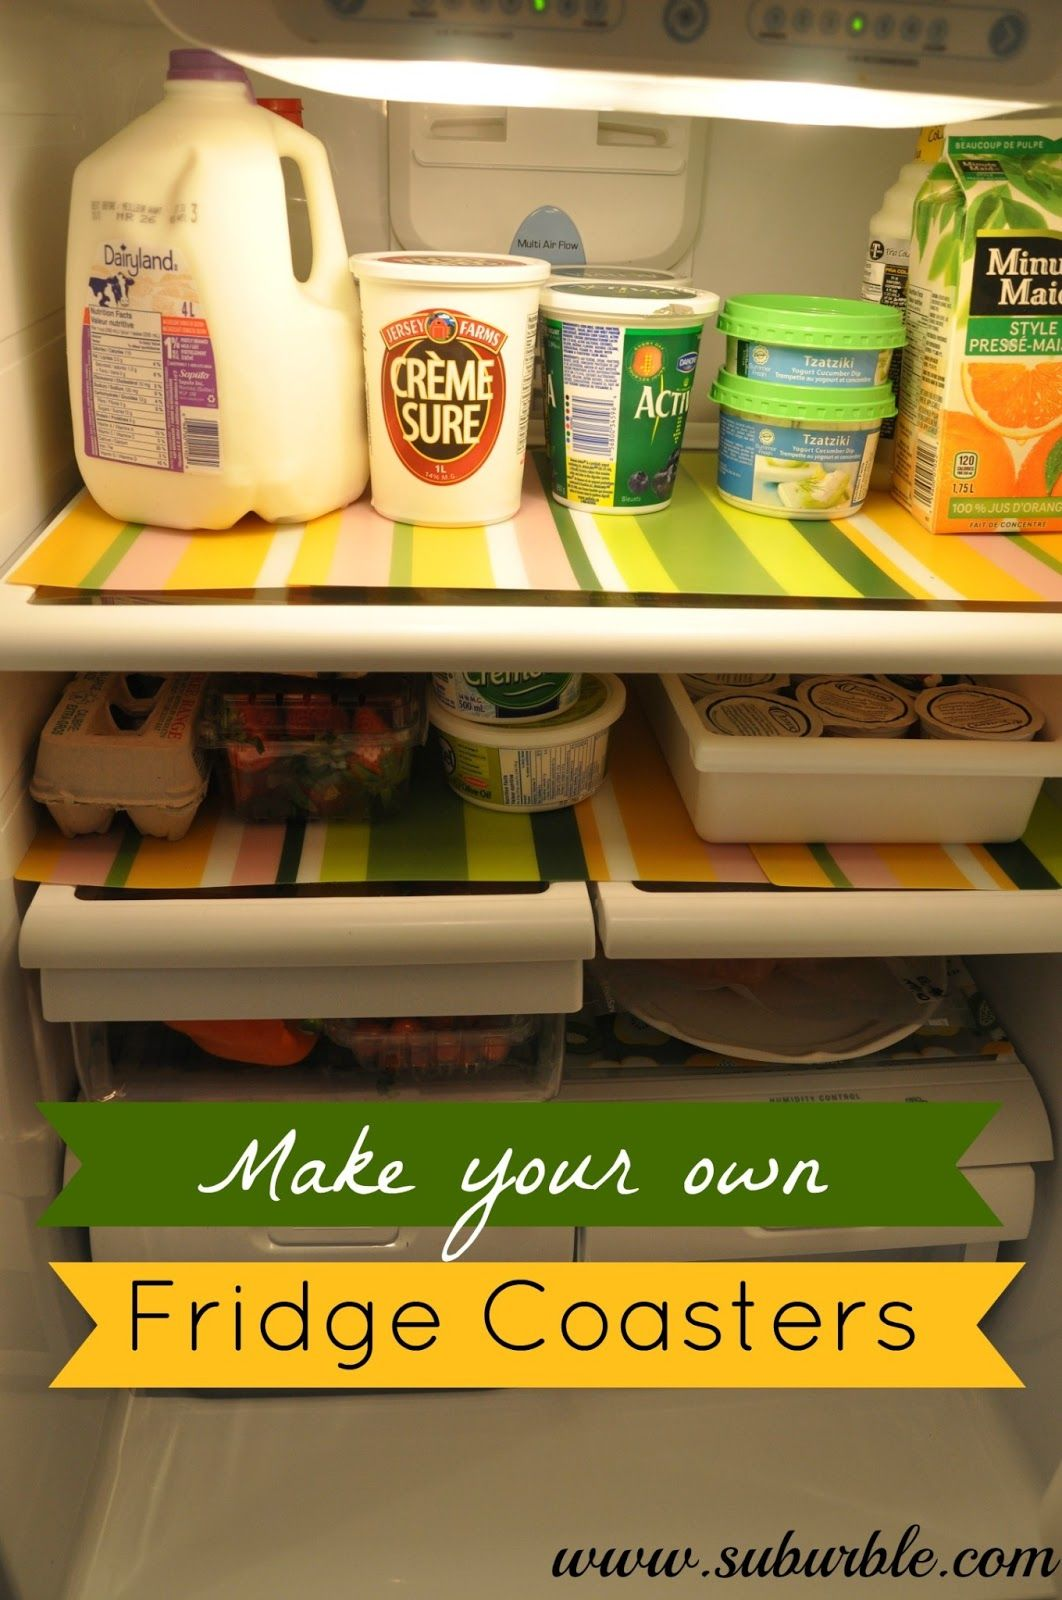 """Fridge Coasters are a very cool idea. They are disposable liners for your fridge shelves that soak up spills and save you the work of wiping up errant messes or congealed slop that you couldn't see behind that giant bottle of lemon juice. Not that it's ever happened to me… However, a recent """"hack"""" of...Read More »"""